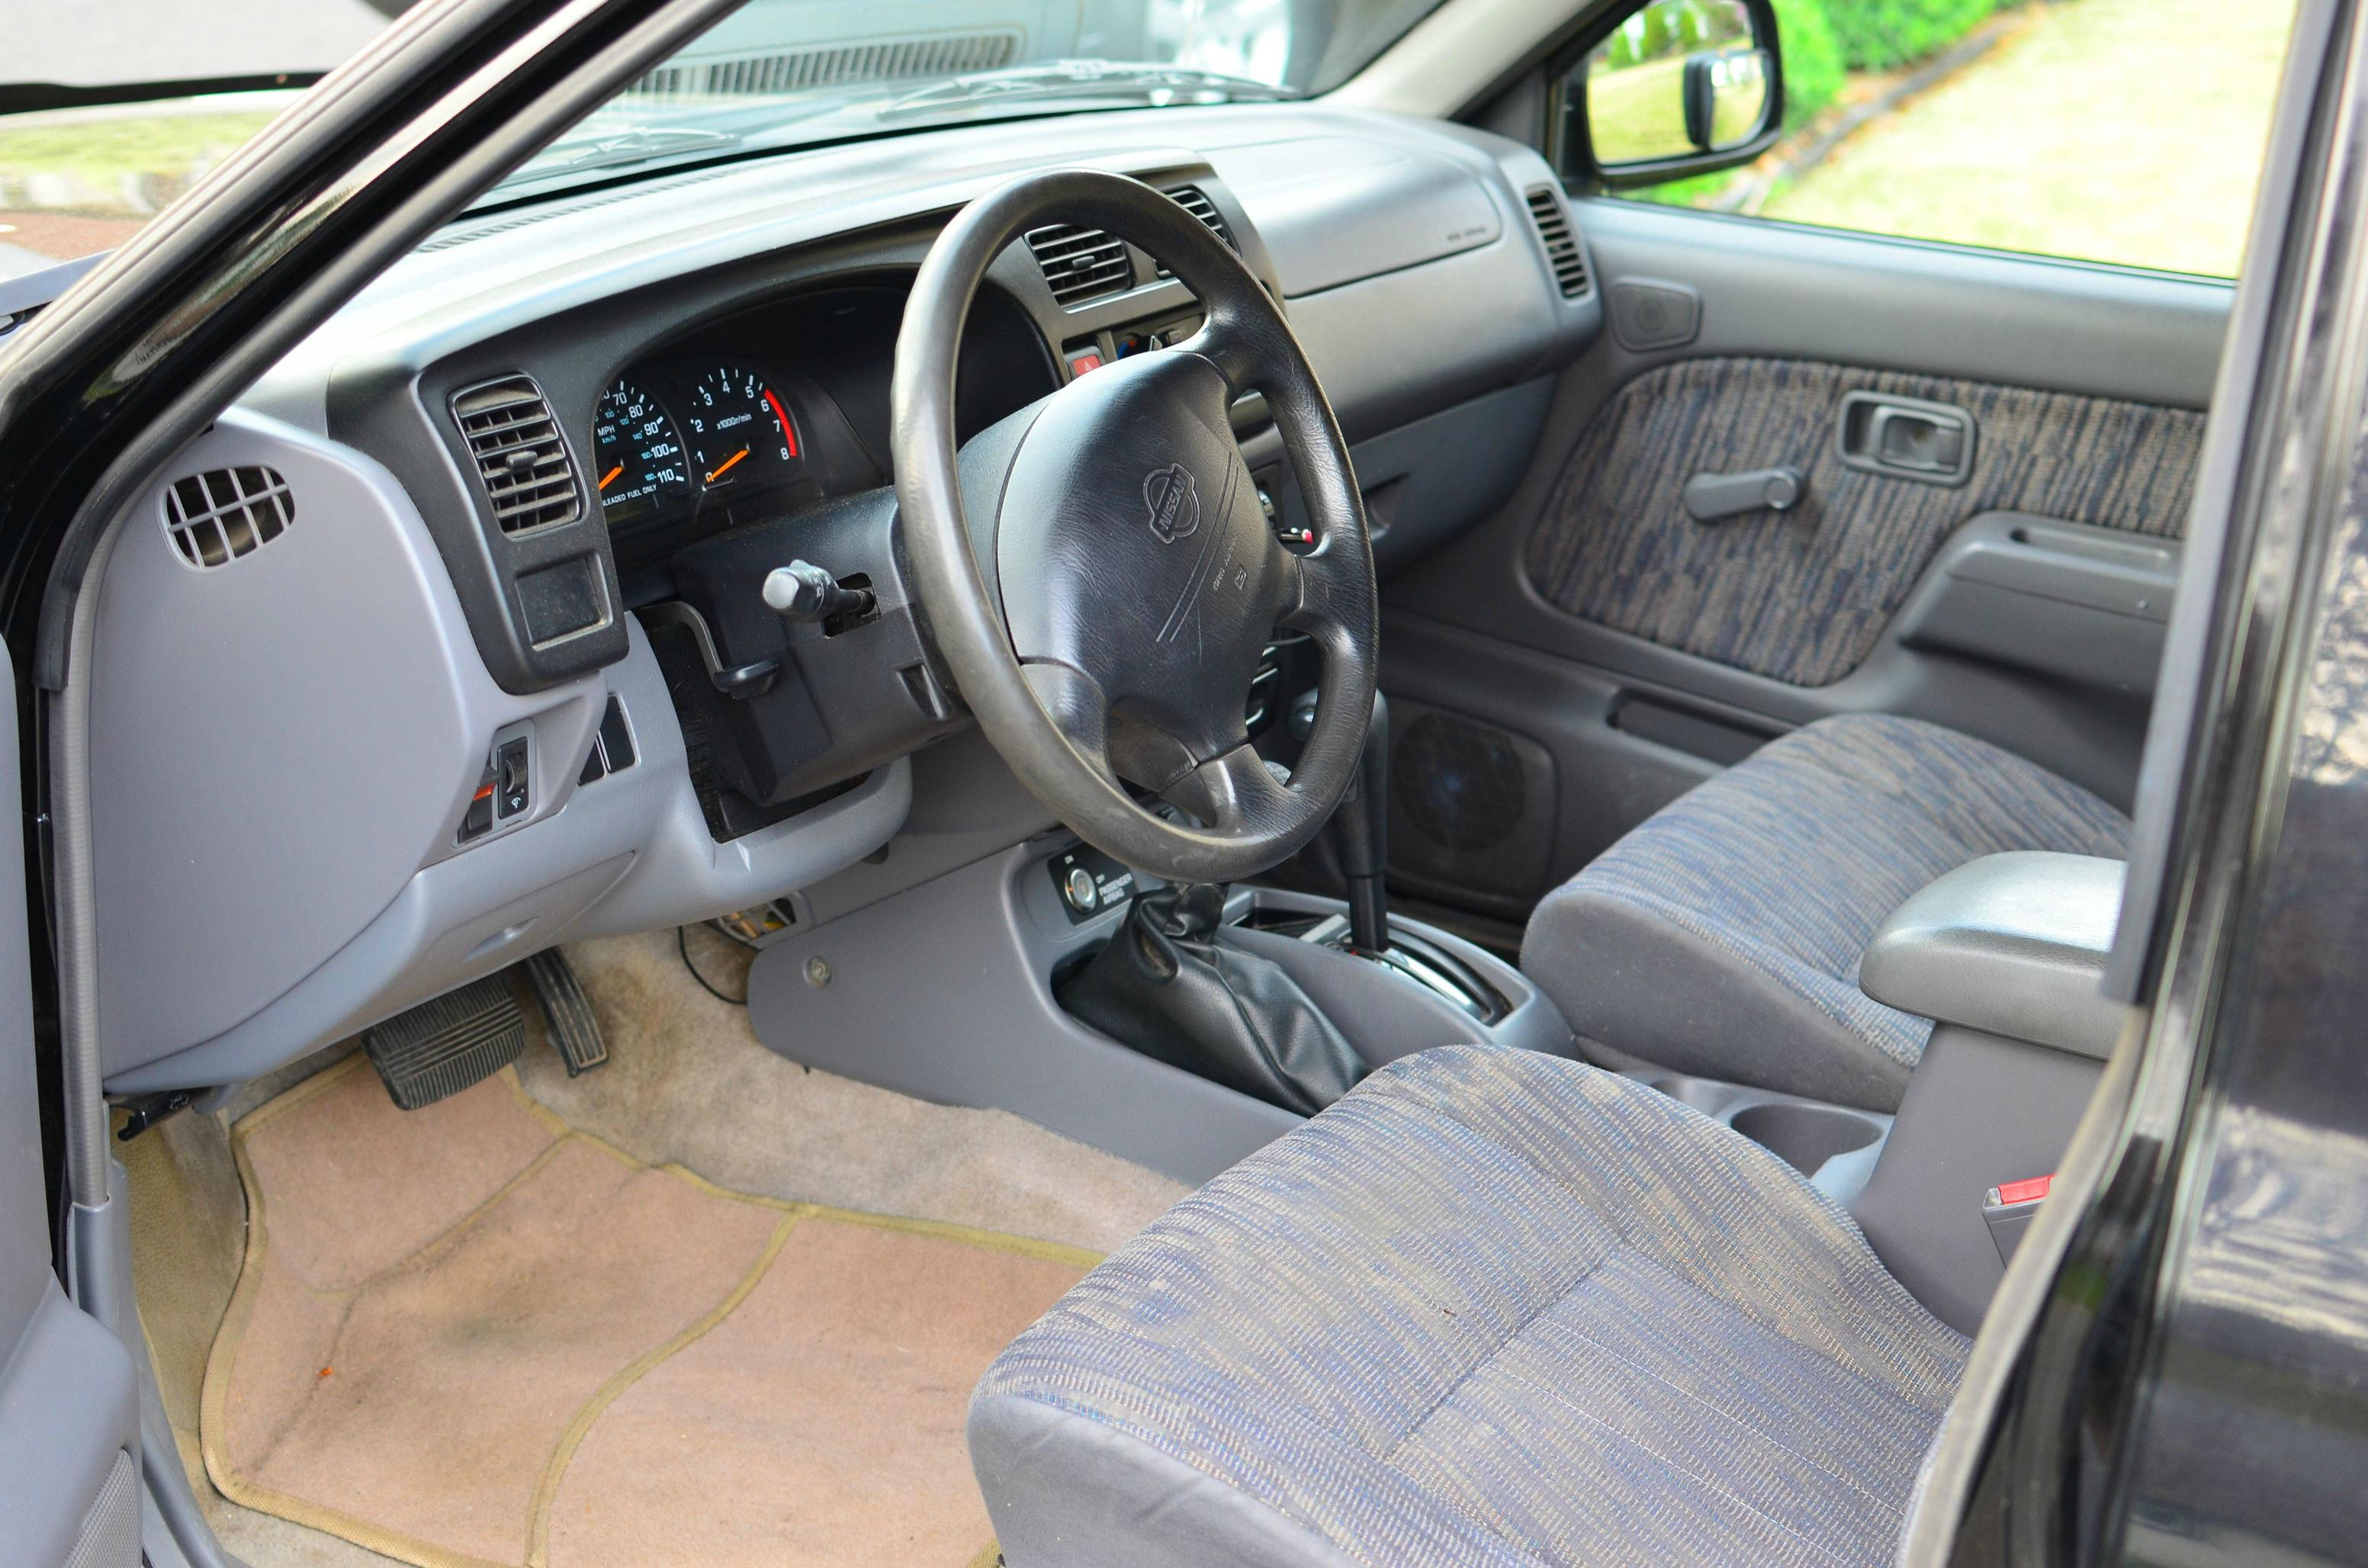 2003 nissan frontier interior colorsfrontierintable coloring 1999 nissan frontier information and photos zombiedrive vanachro Images